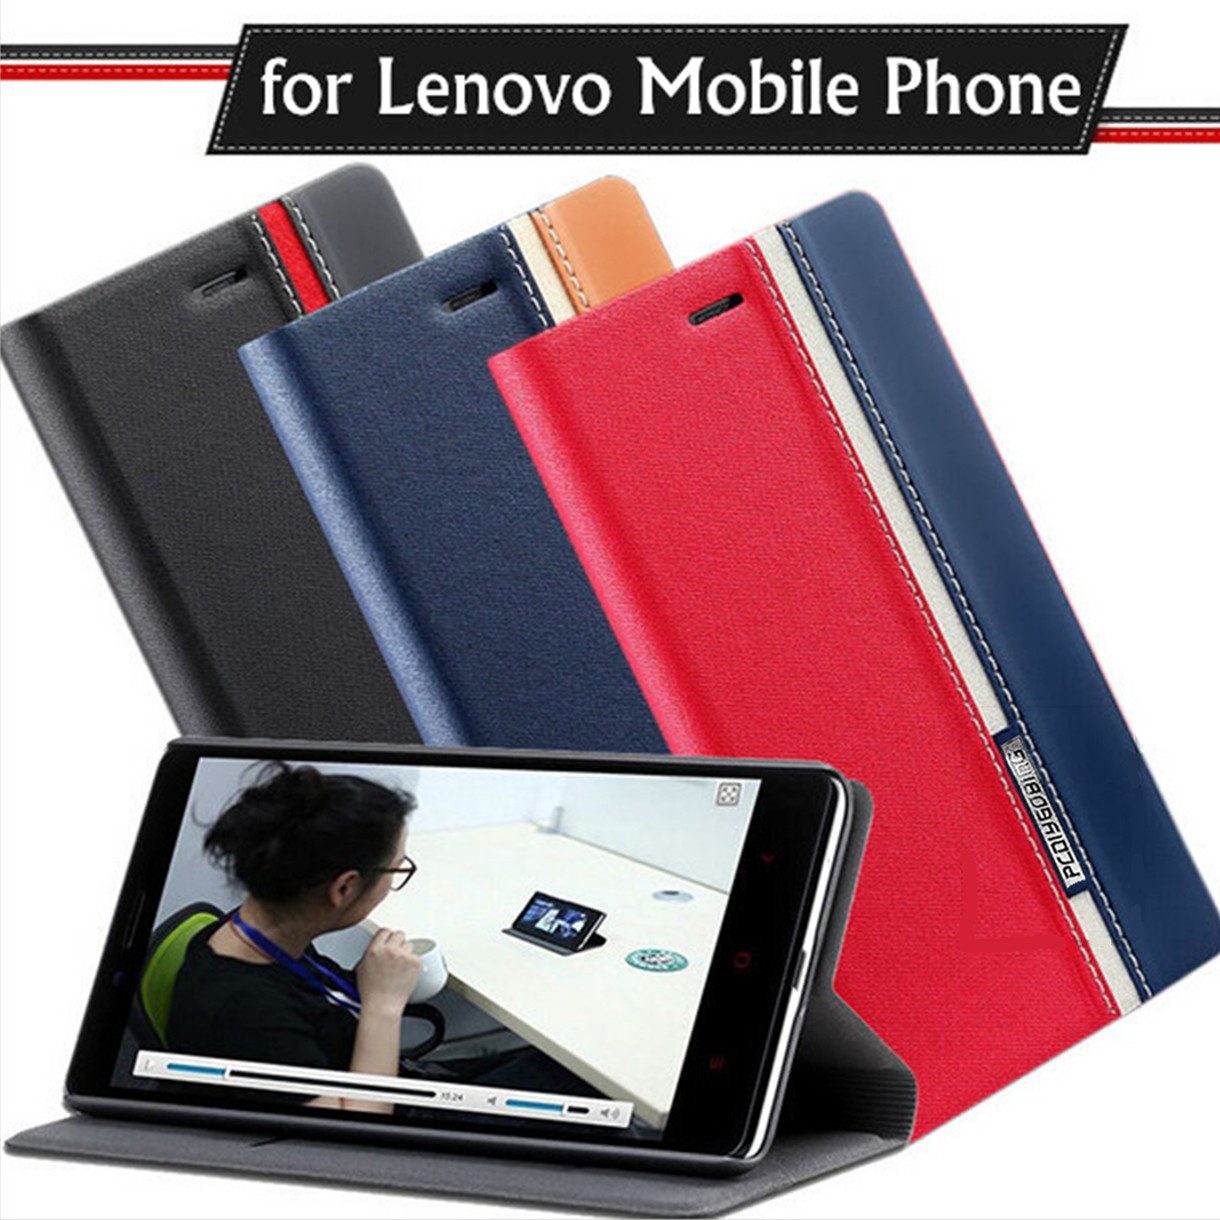 New case for Lenovo Vibe C A2020 C2 K10A40 P1 P1M X3 X2 A1000 A2800 K5 Note Double color Flip PU Leather back cover Shell